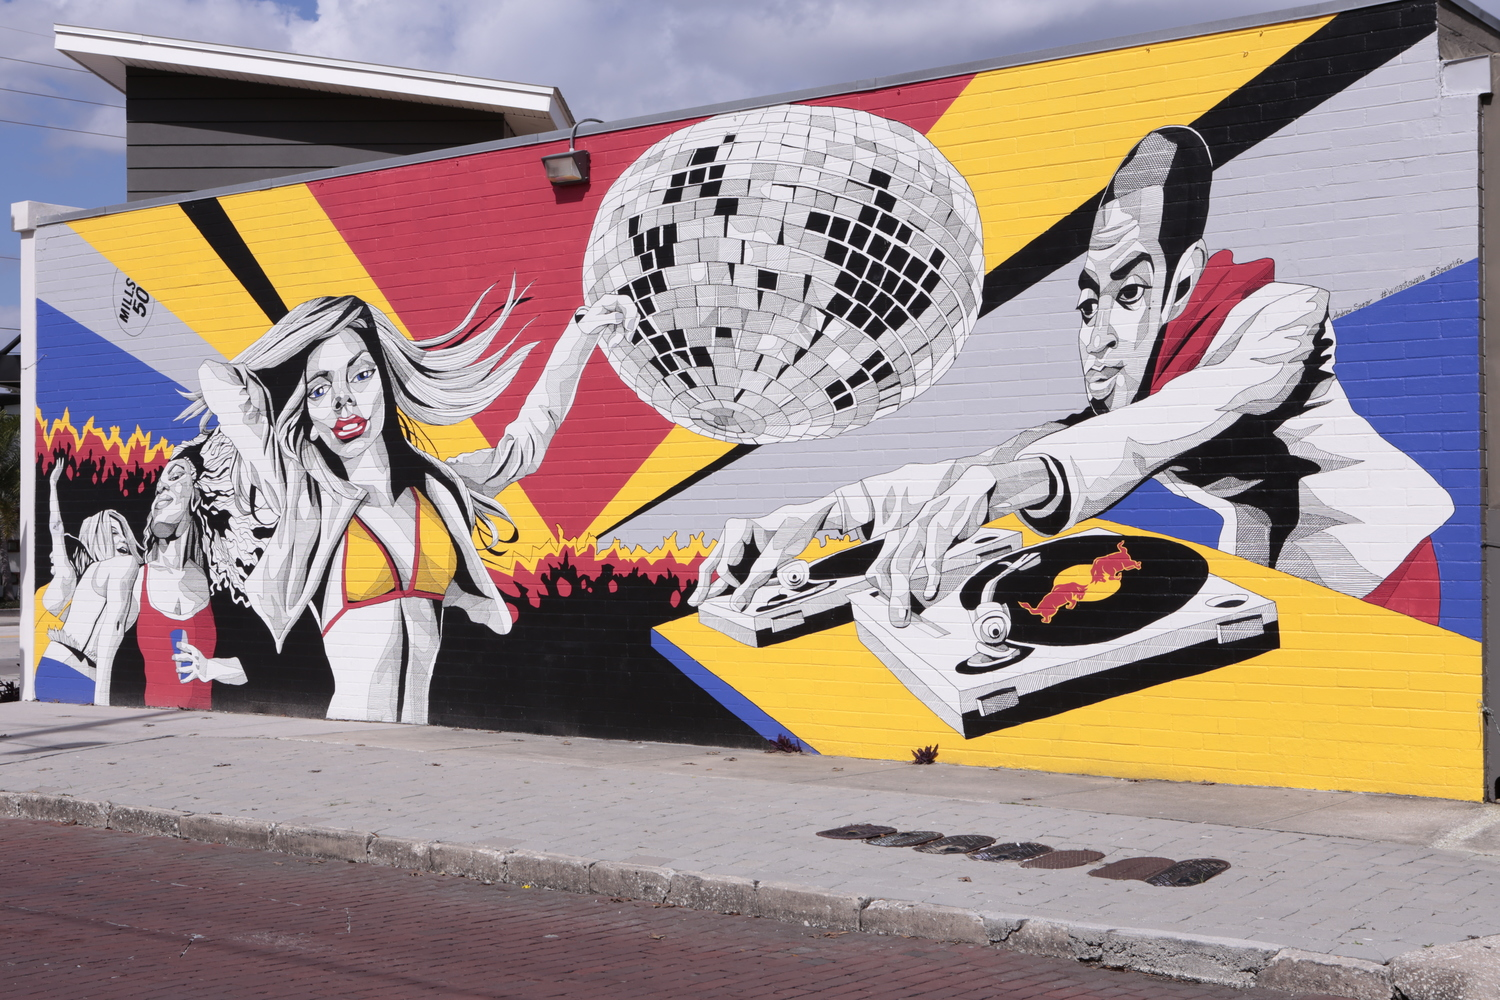 M-SQUARED X RED BULL MUSIC MURAL PAINTING BY ANDREW SPEAR. #WINGSTOWALLS LOCATED IN THE MILLS 50 DISTRICT IN ORLANDO, FL.